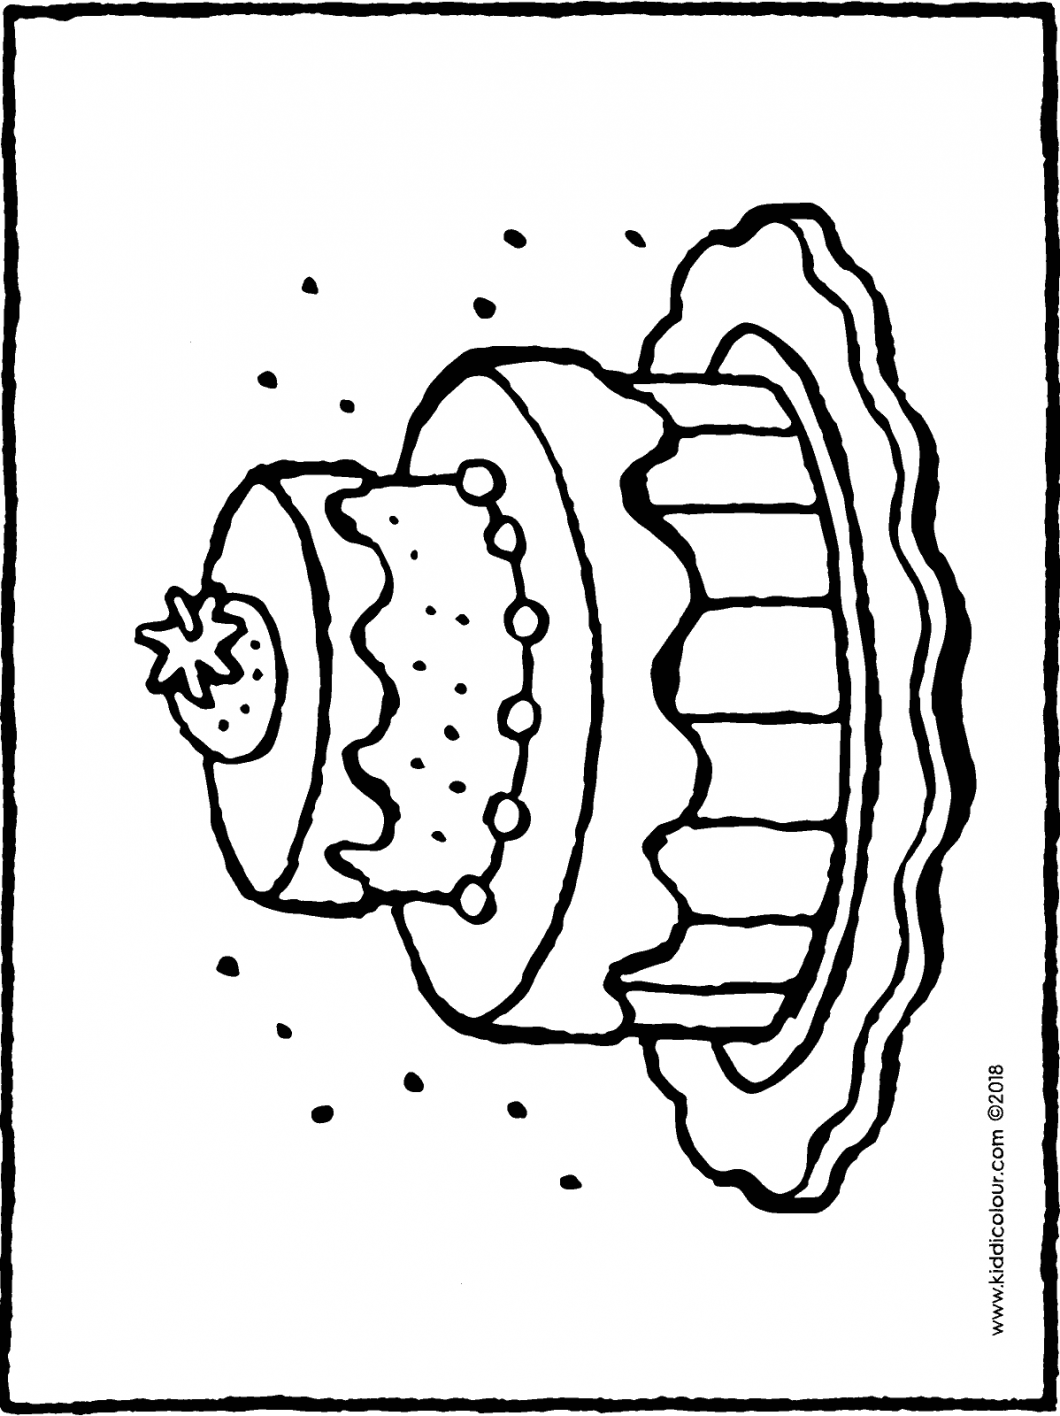 cake with strawberry colouring page drawing picture 01H